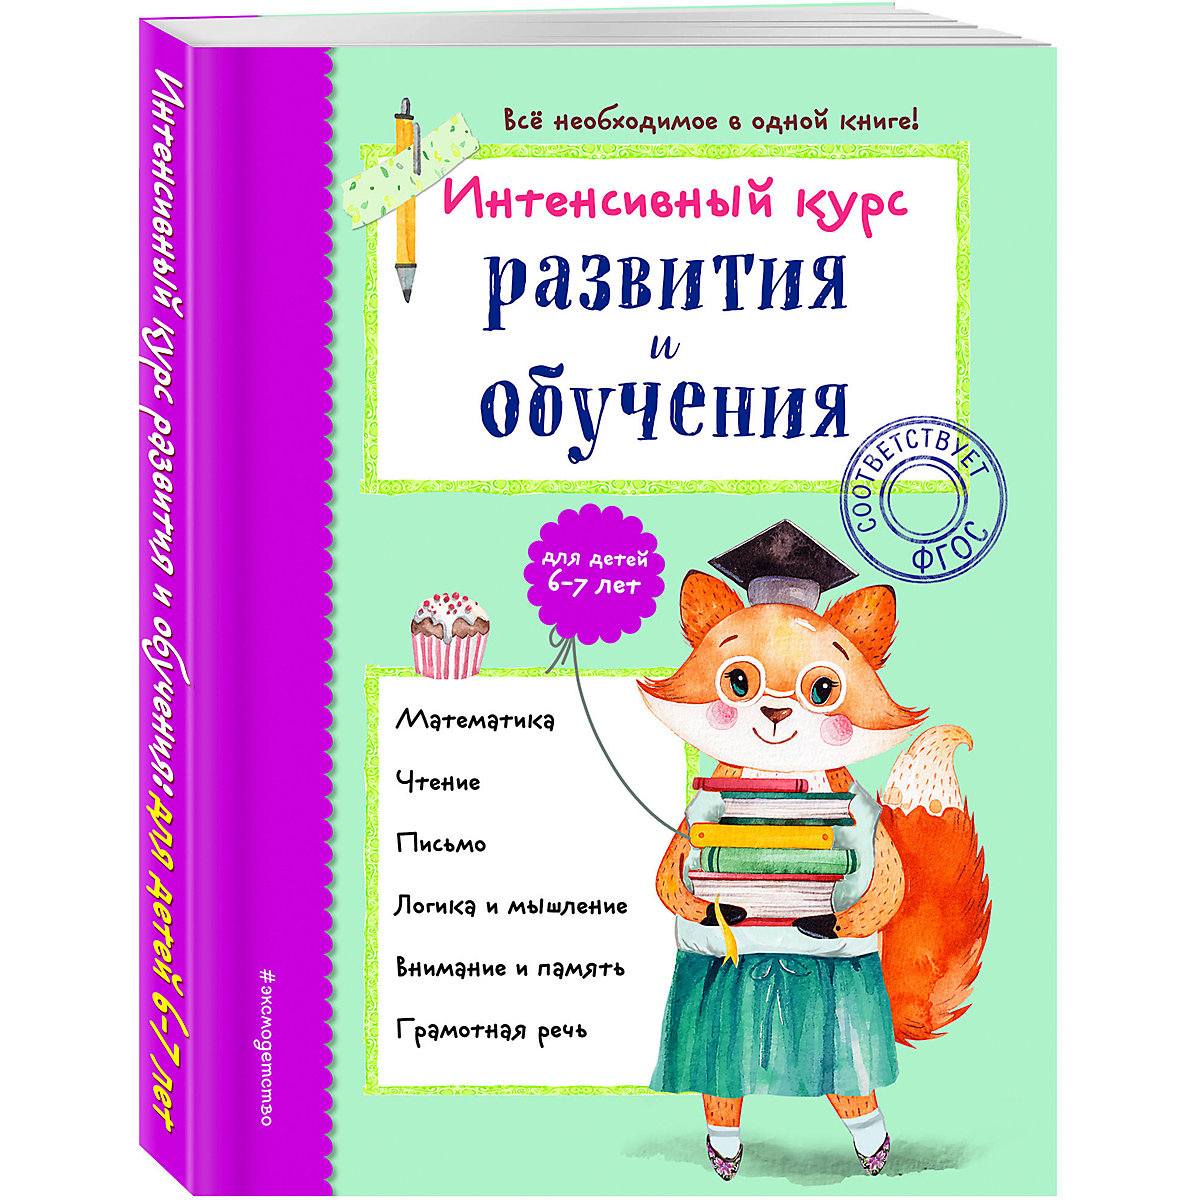 Books EKSMO 10757969 Children Education Encyclopedia Alphabet Dictionary Book For Baby MTpromo